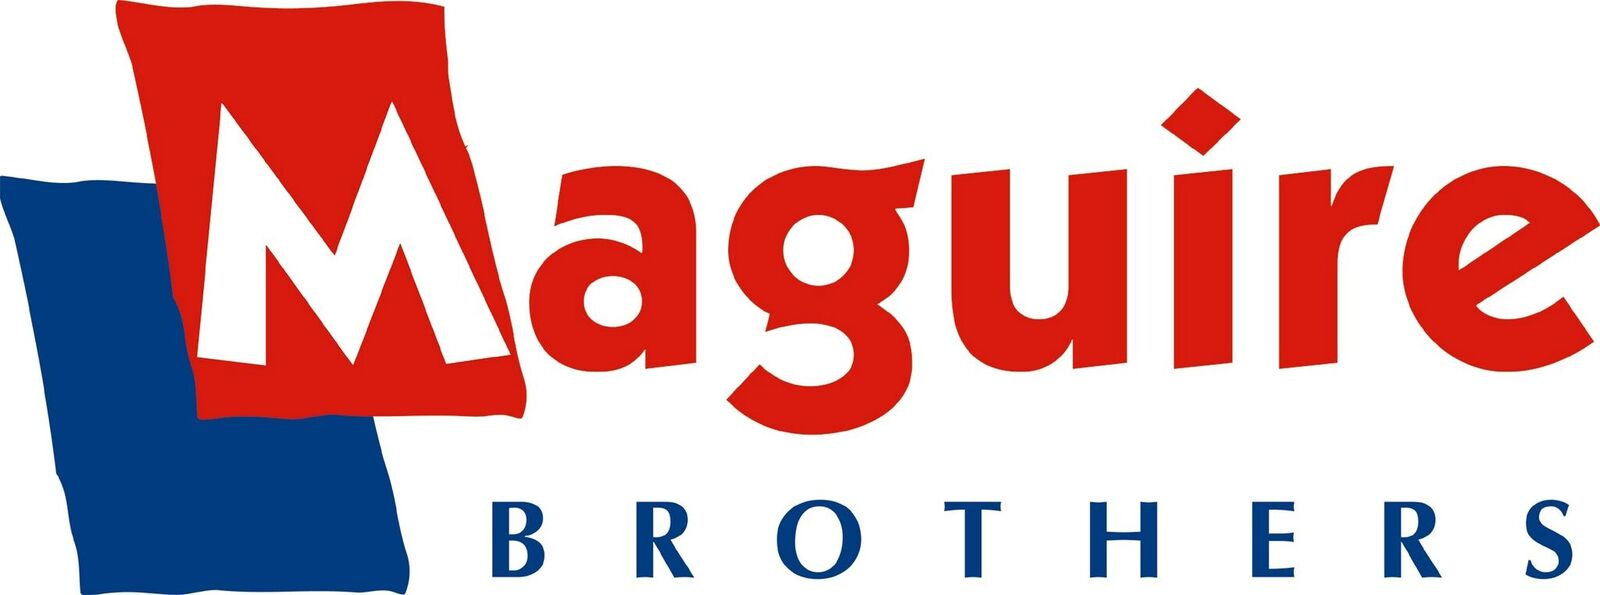 Maguire Brothers